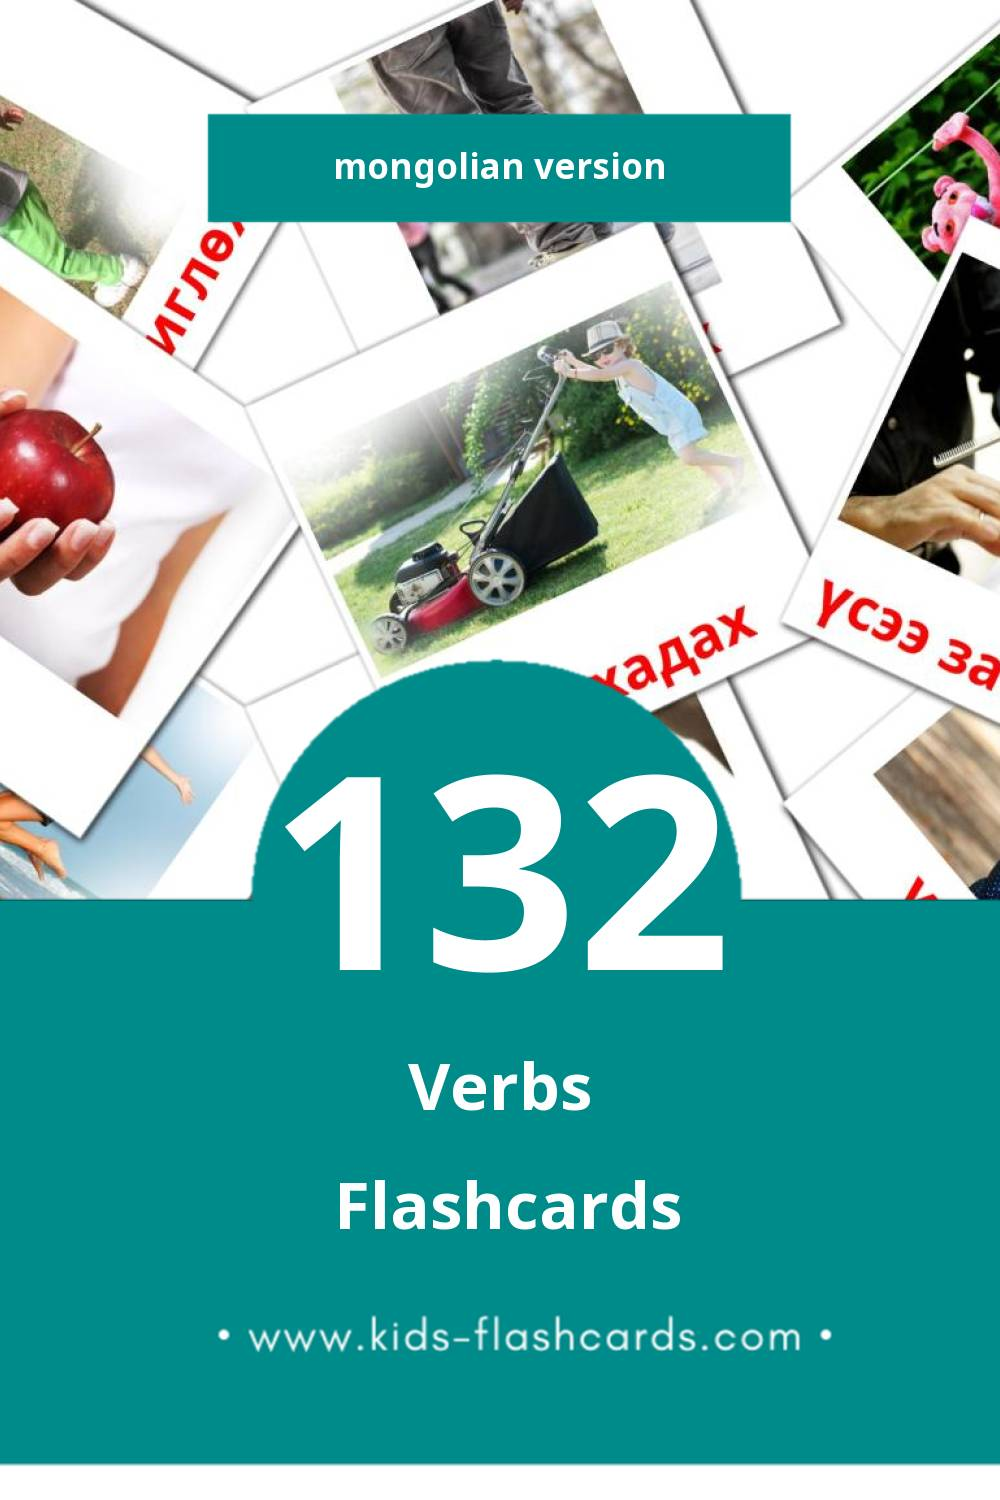 Visual Үйл үгс Flashcards for Toddlers (110 cards in Mongolian)